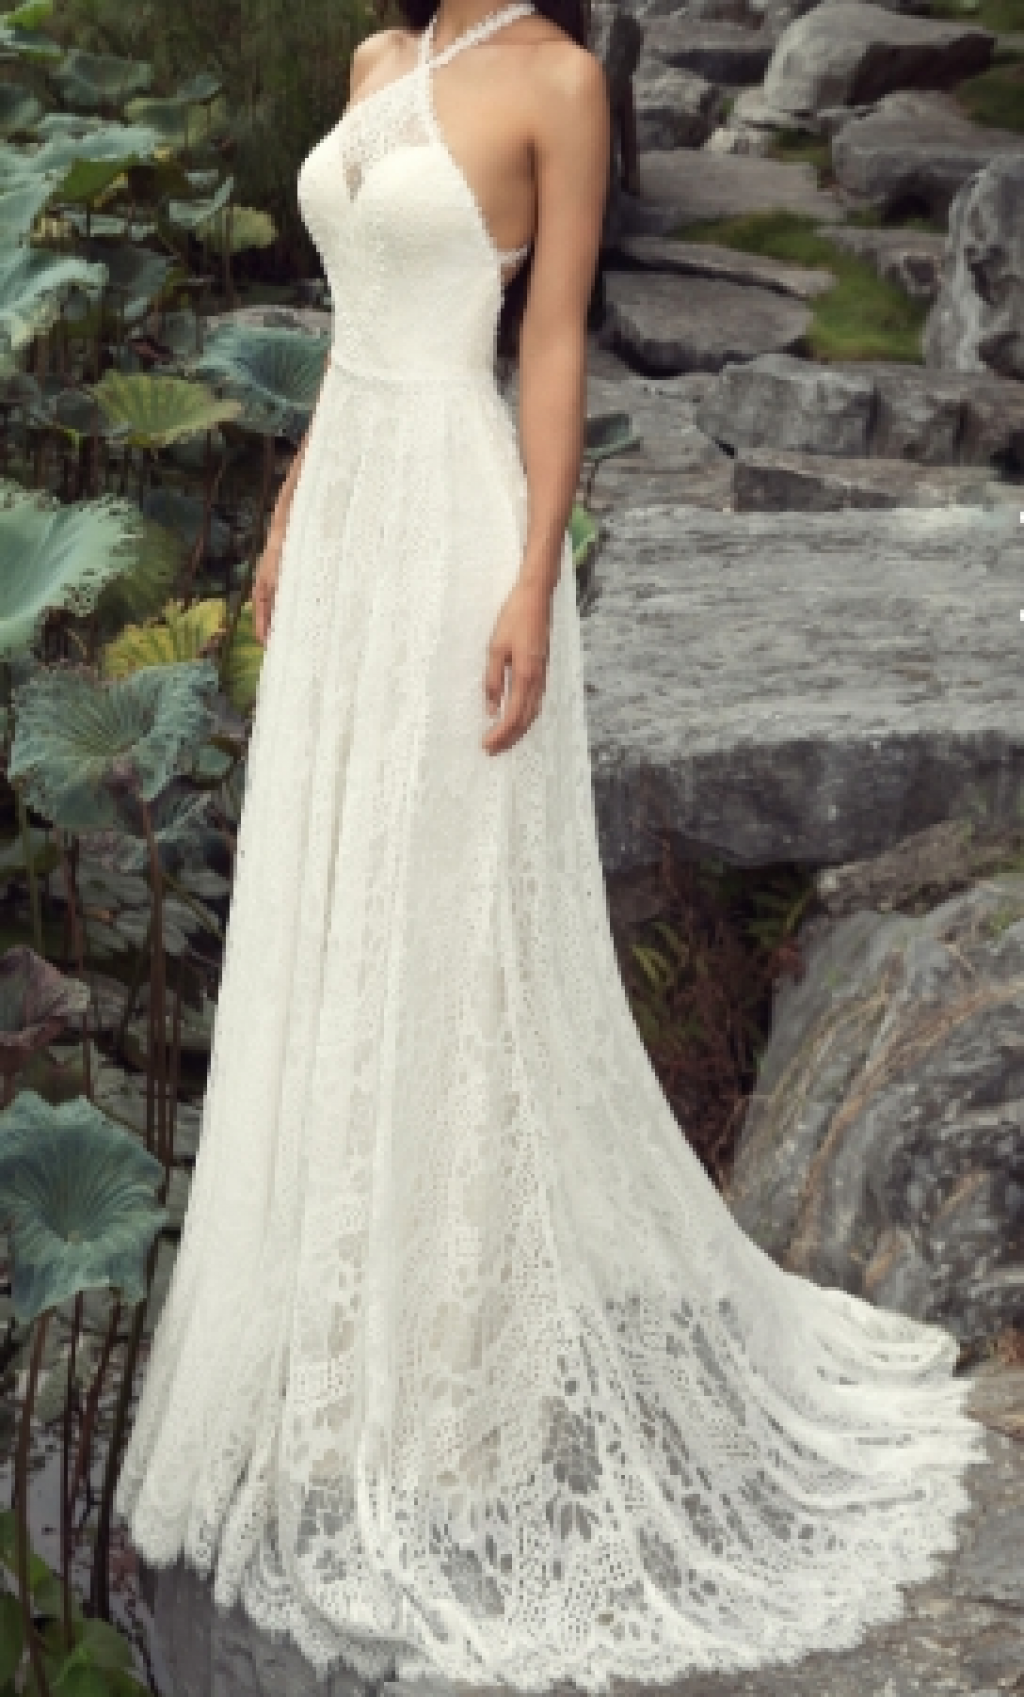 Chic Nostalgia - Starling wedding gown